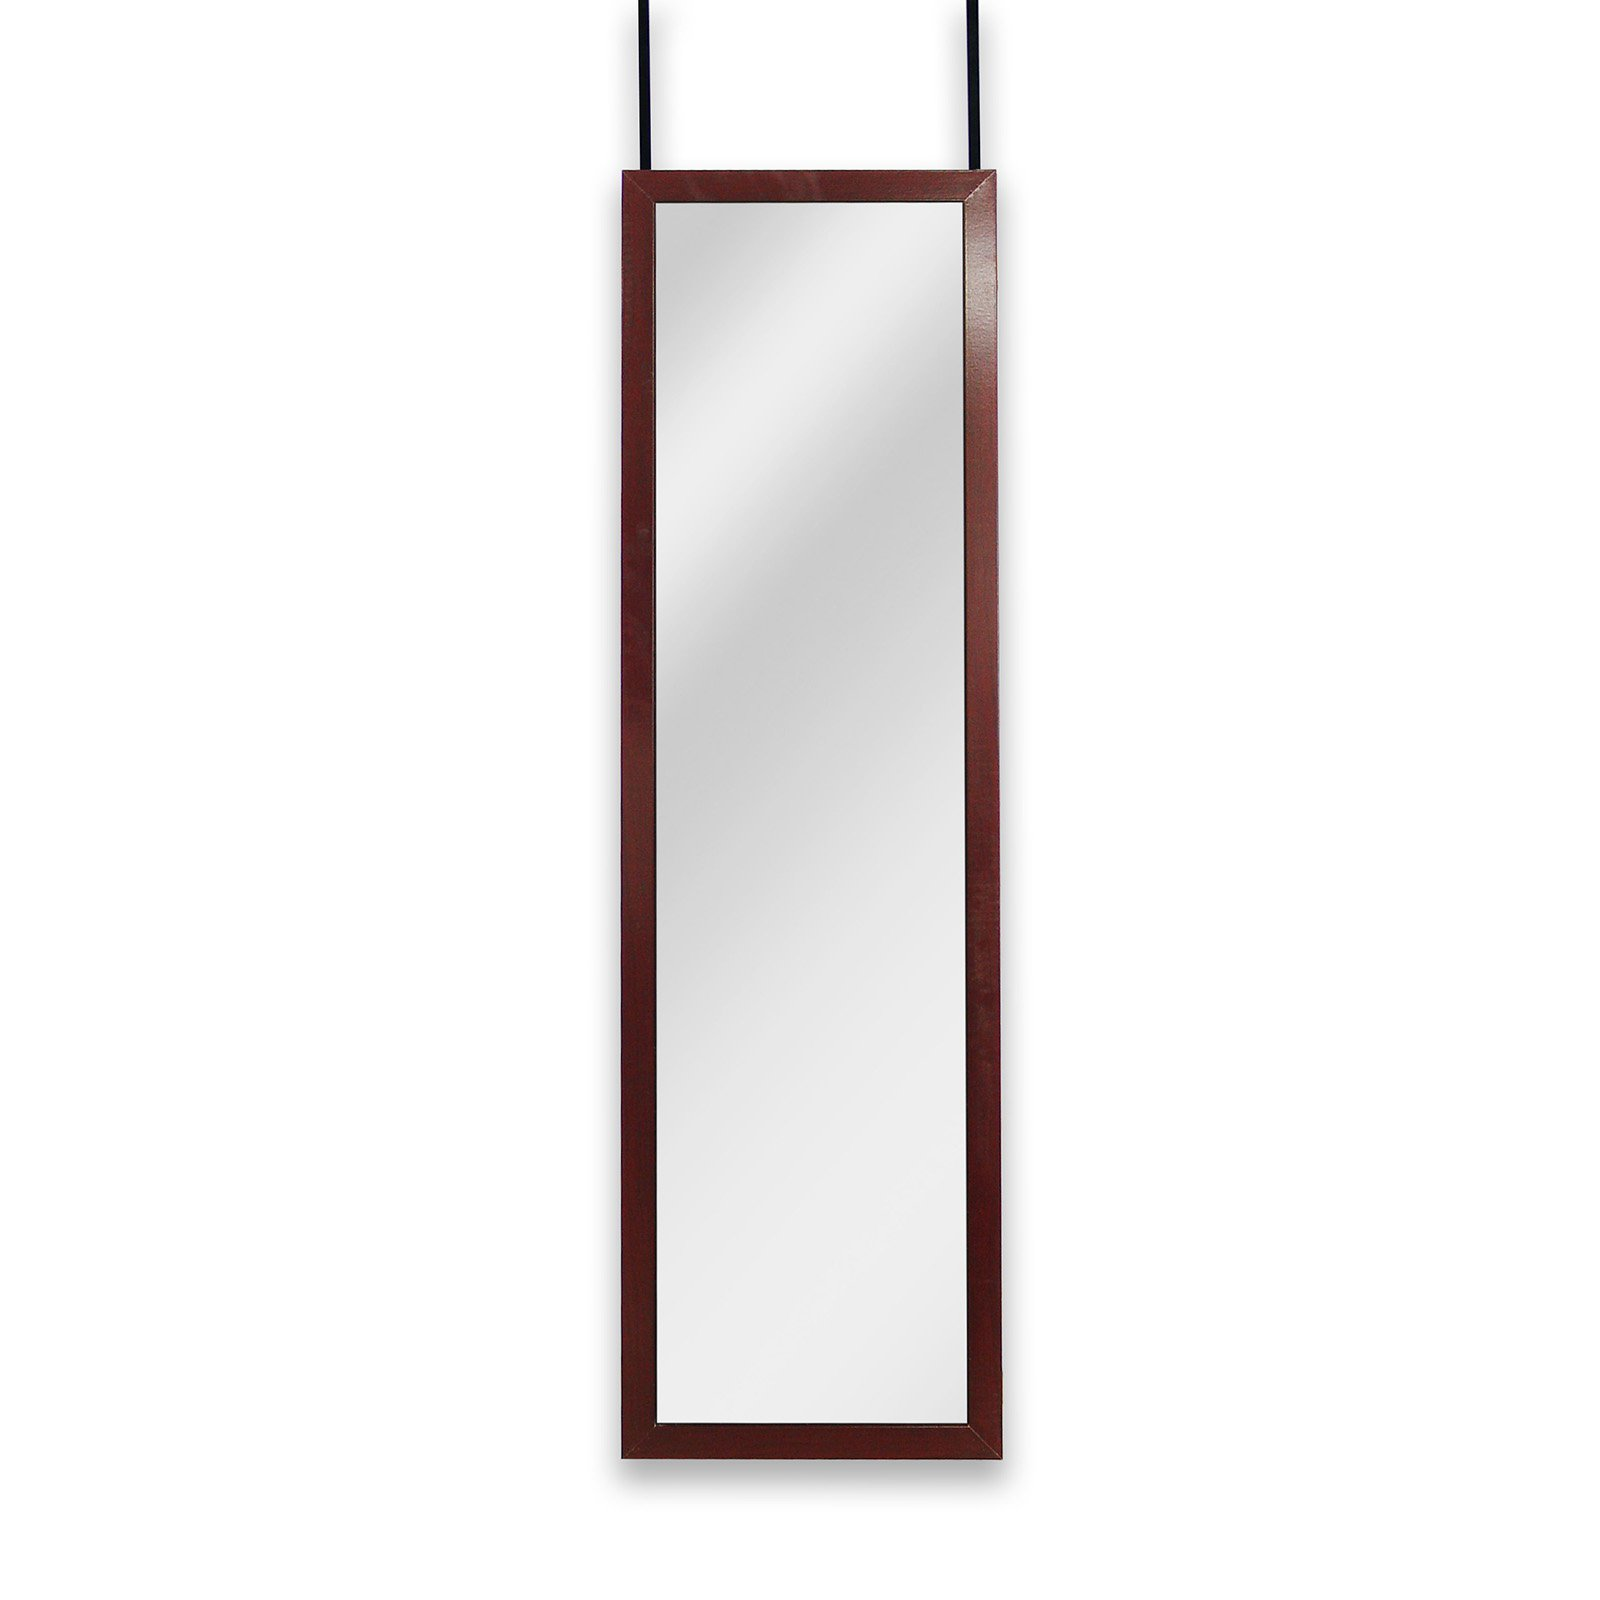 Mirrotek Over the Door   Wall Mounted Full Length Dressing Mirror by Mirrotek International Llc.